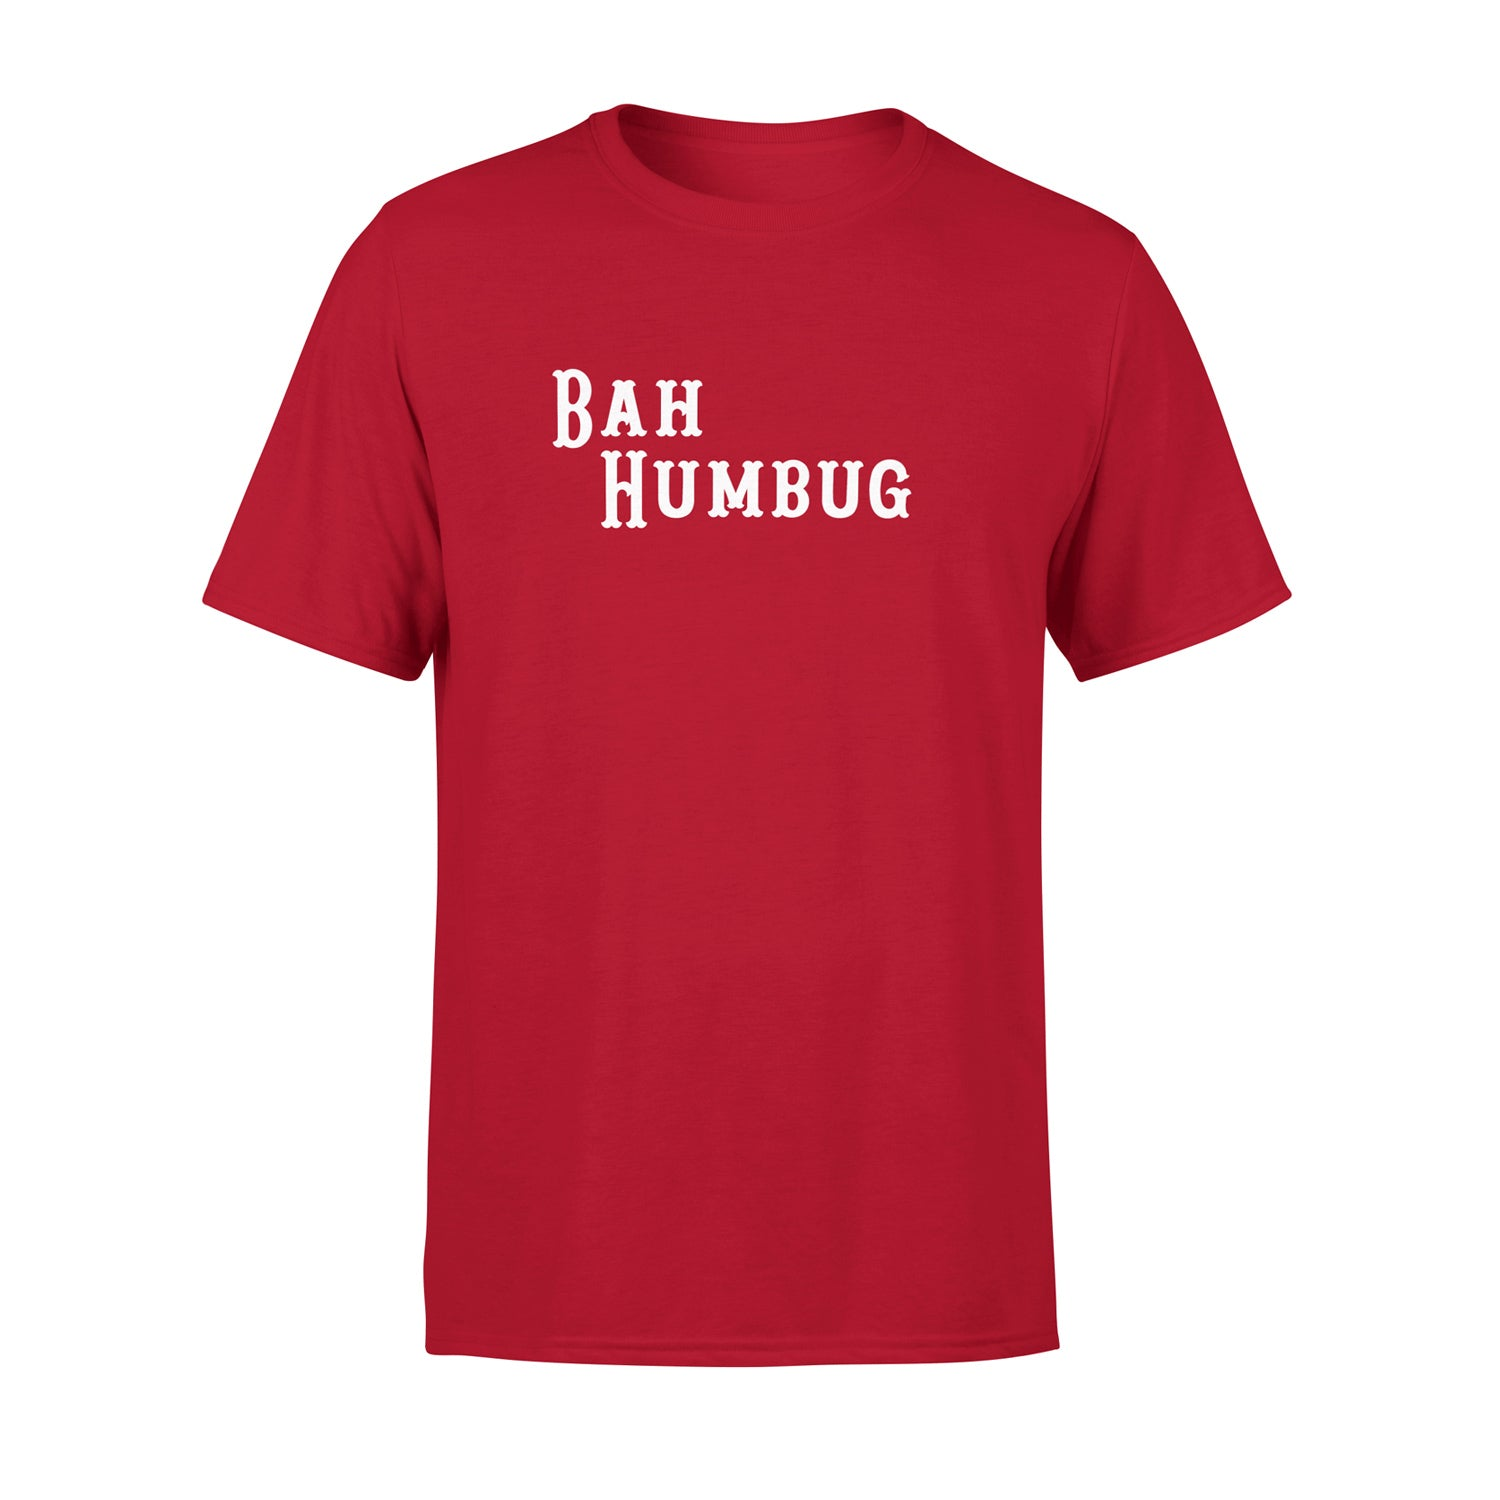 red mens t shirt with 'bah humbug' on it as a christmas jumper alternative